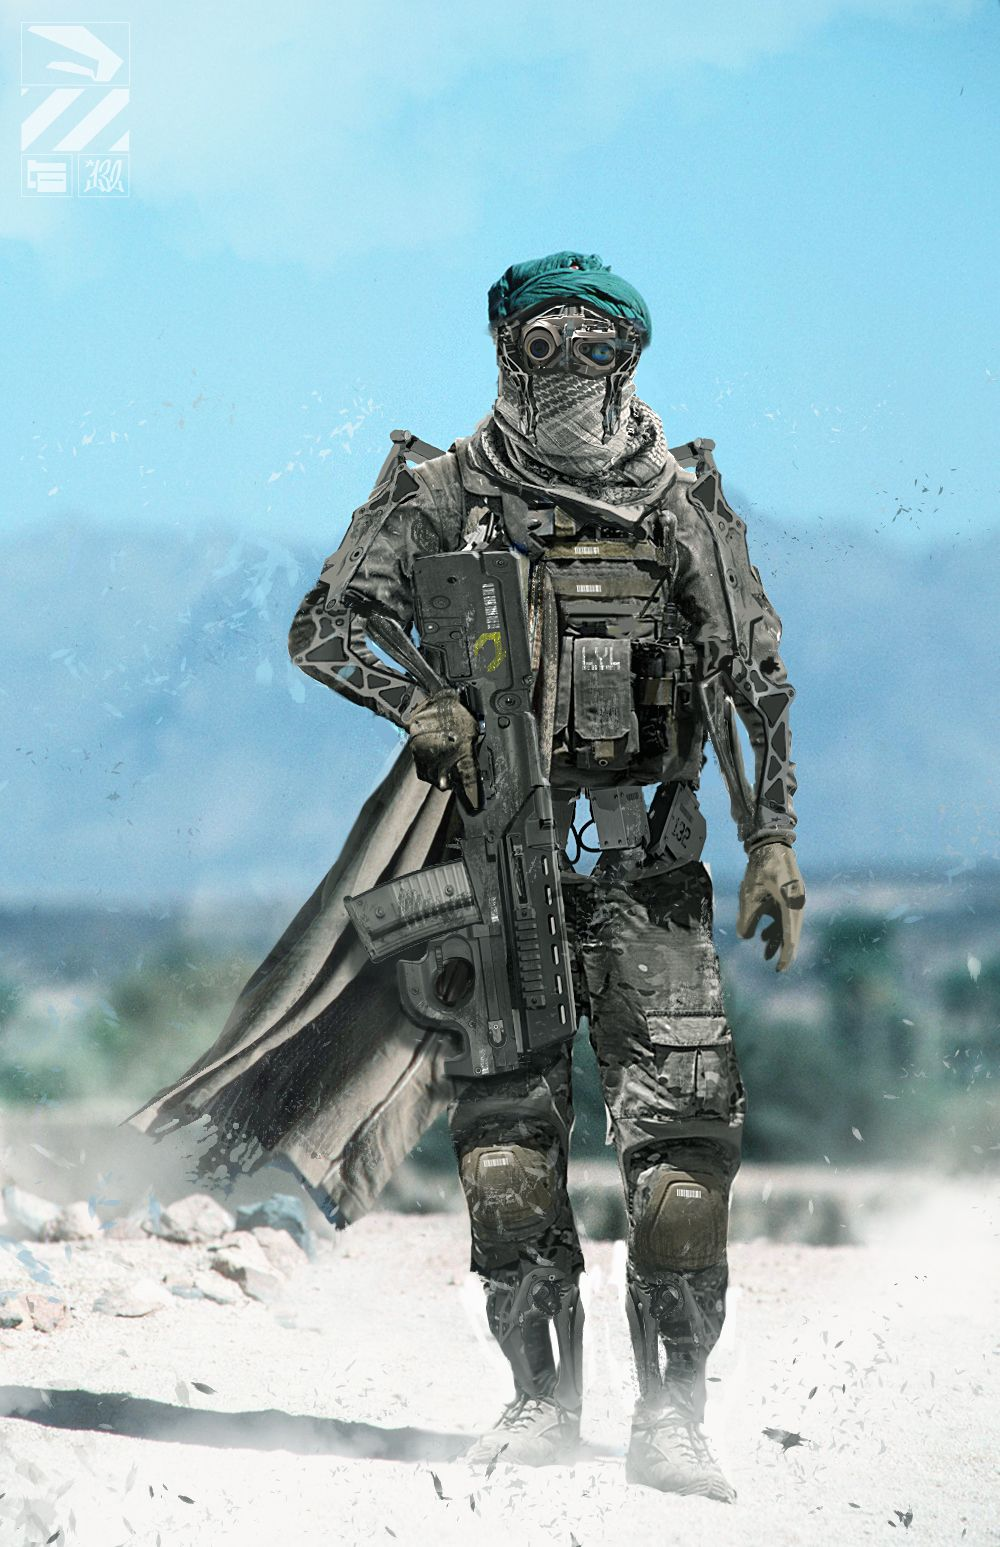 Balisian desert officer, Captain Tygri Cole. Went through major cybernetic reconstructive surgery to repair his body after a devastating ambush near Crystalia.